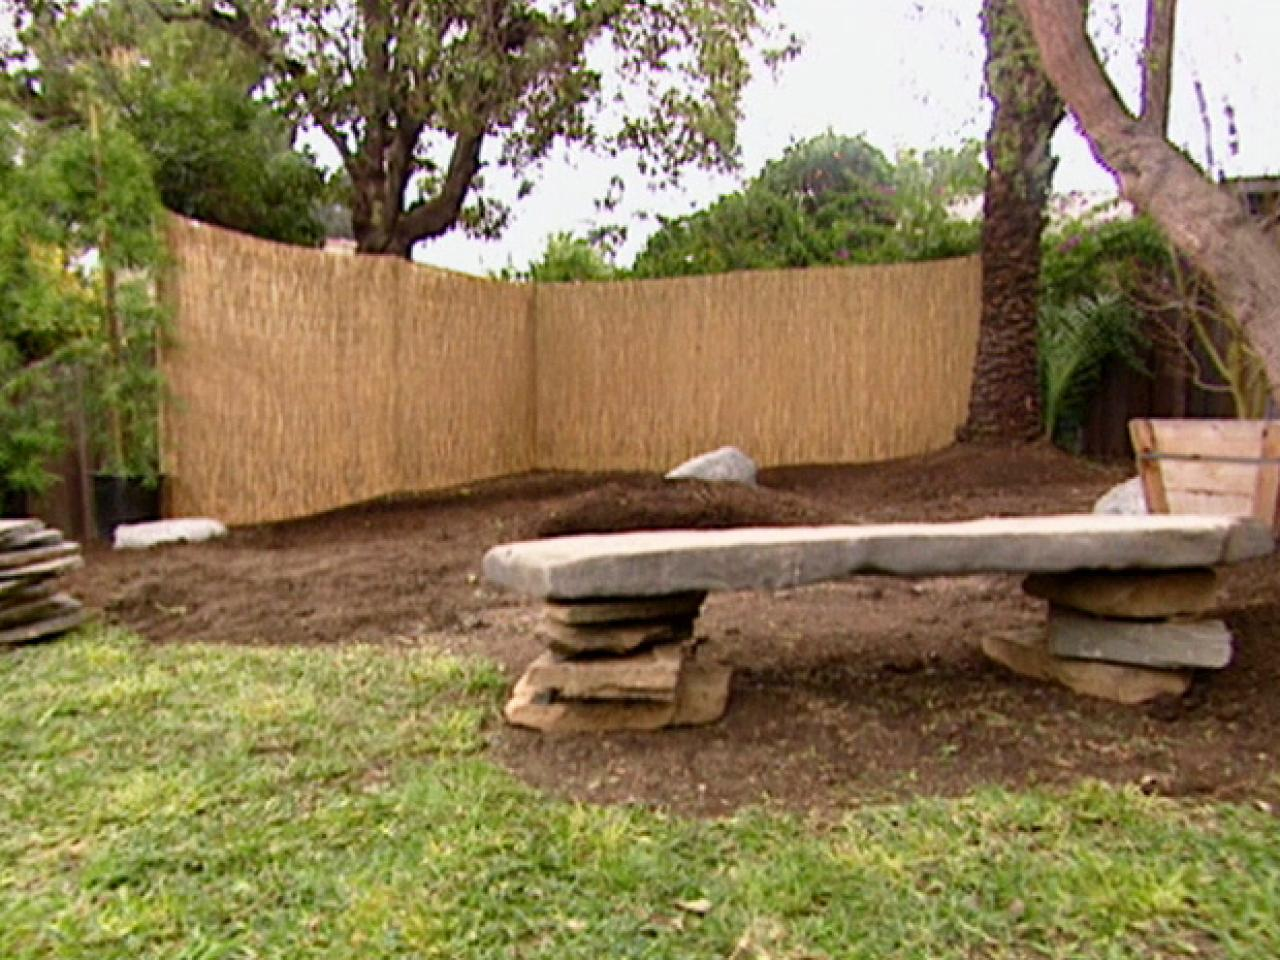 Build A Japanese Garden japanese elements inspire zen garden | hgtv